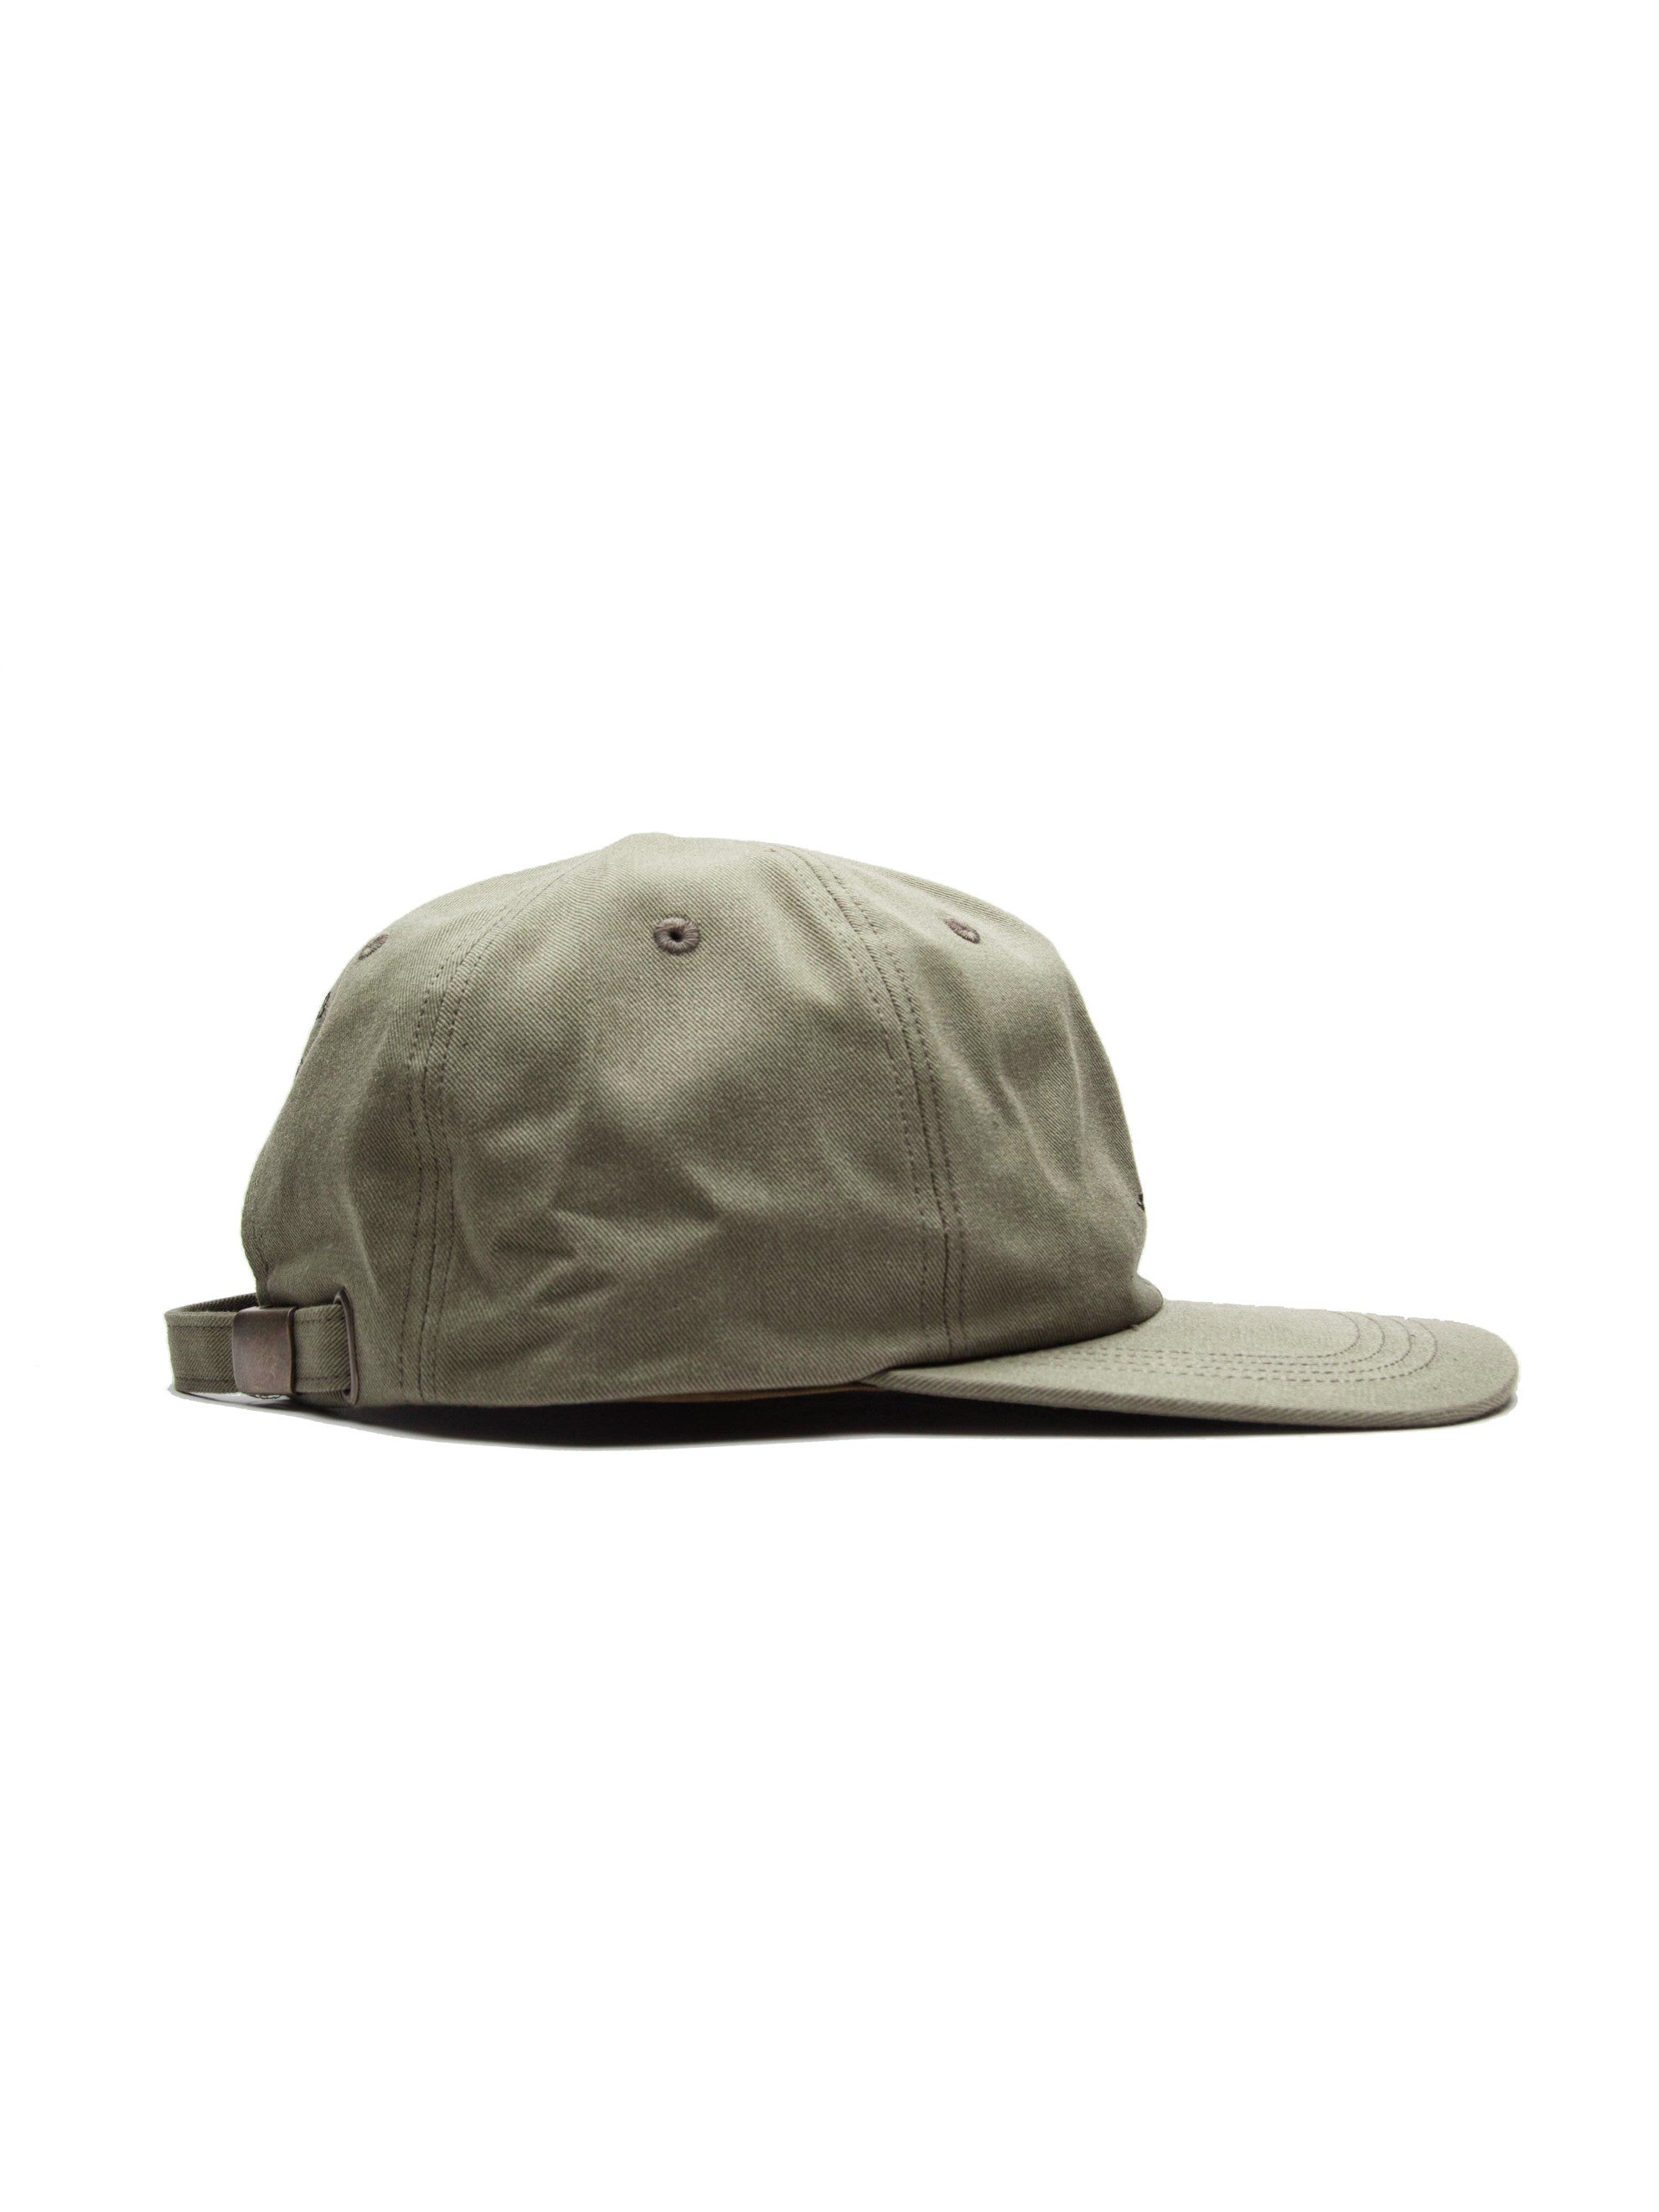 Olive Drab T-6 Cap (Cotton Chino) 4